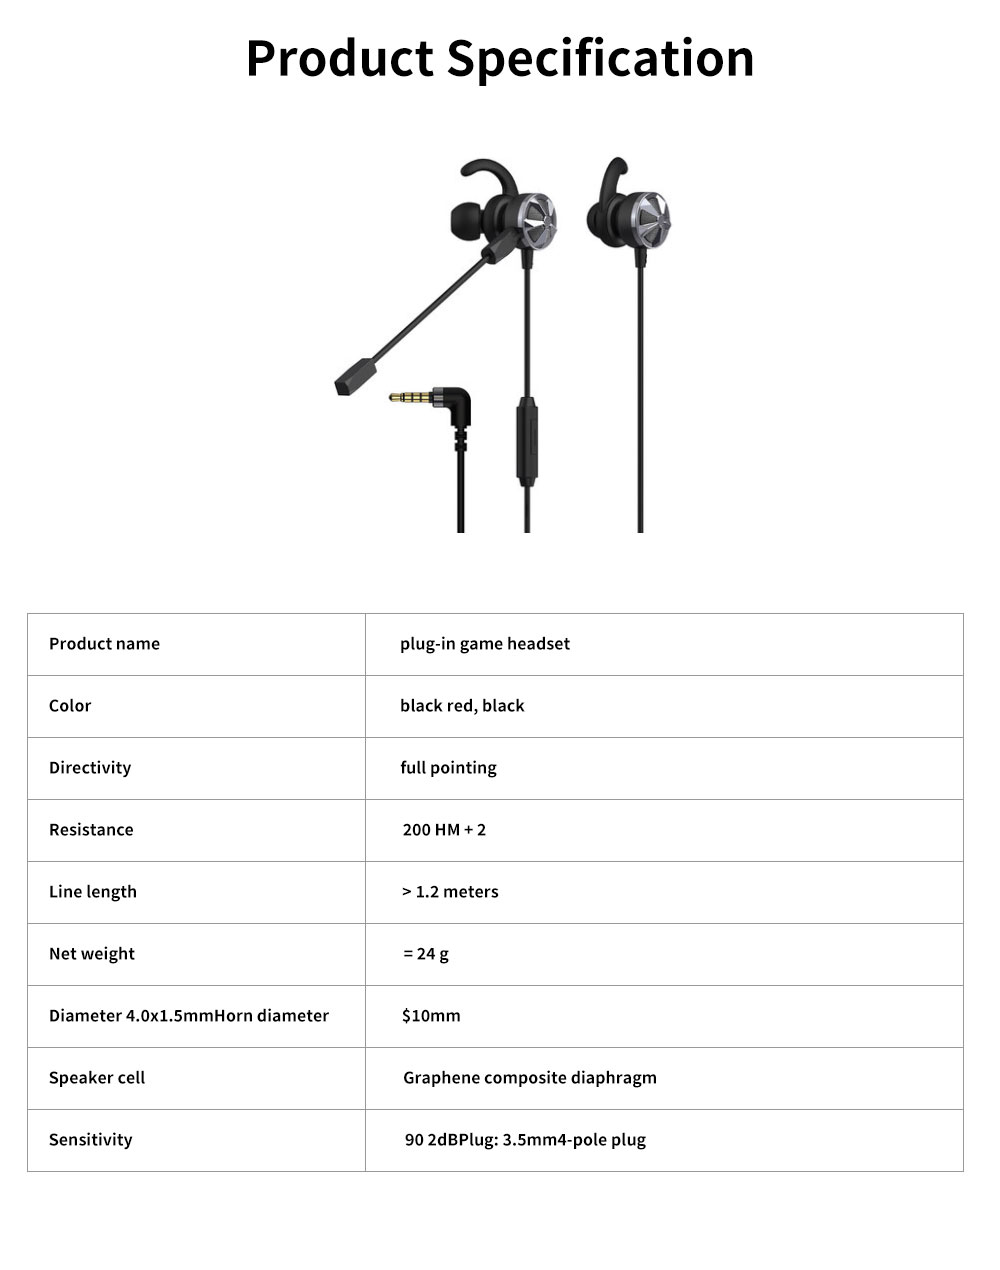 Gaming Mobile Phone Games Headphones with Graphene Diaphragm, Plugged Out Microphone & 7.1 Track, Professional E-sports Mobile Game headphones 6